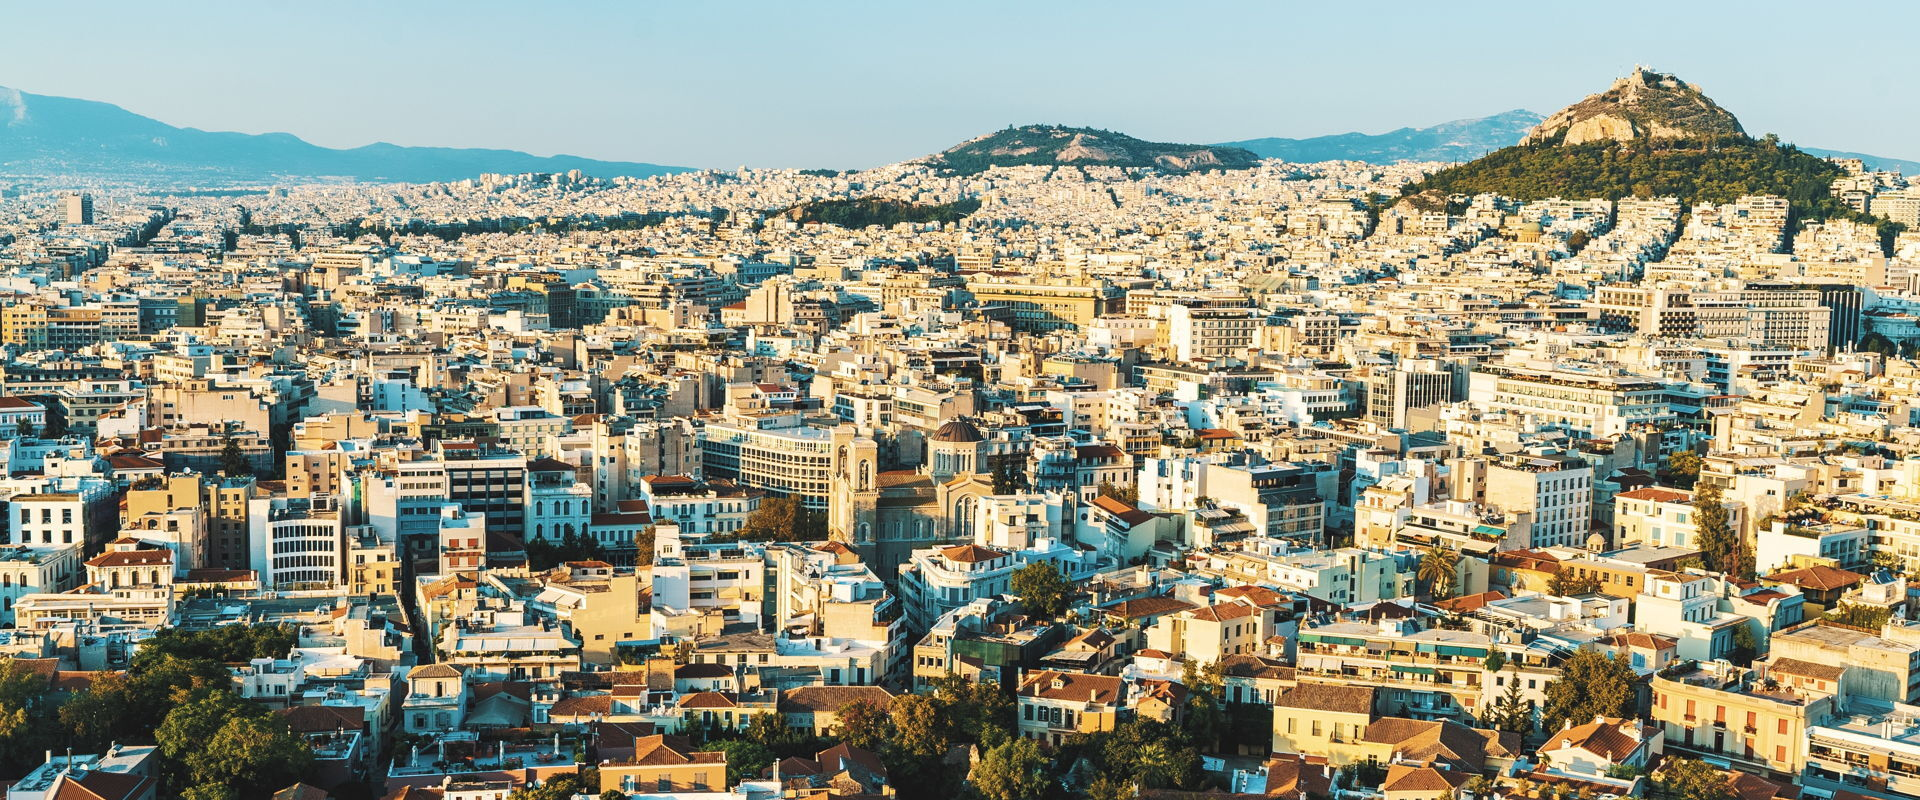 The city of Athens at Sunset